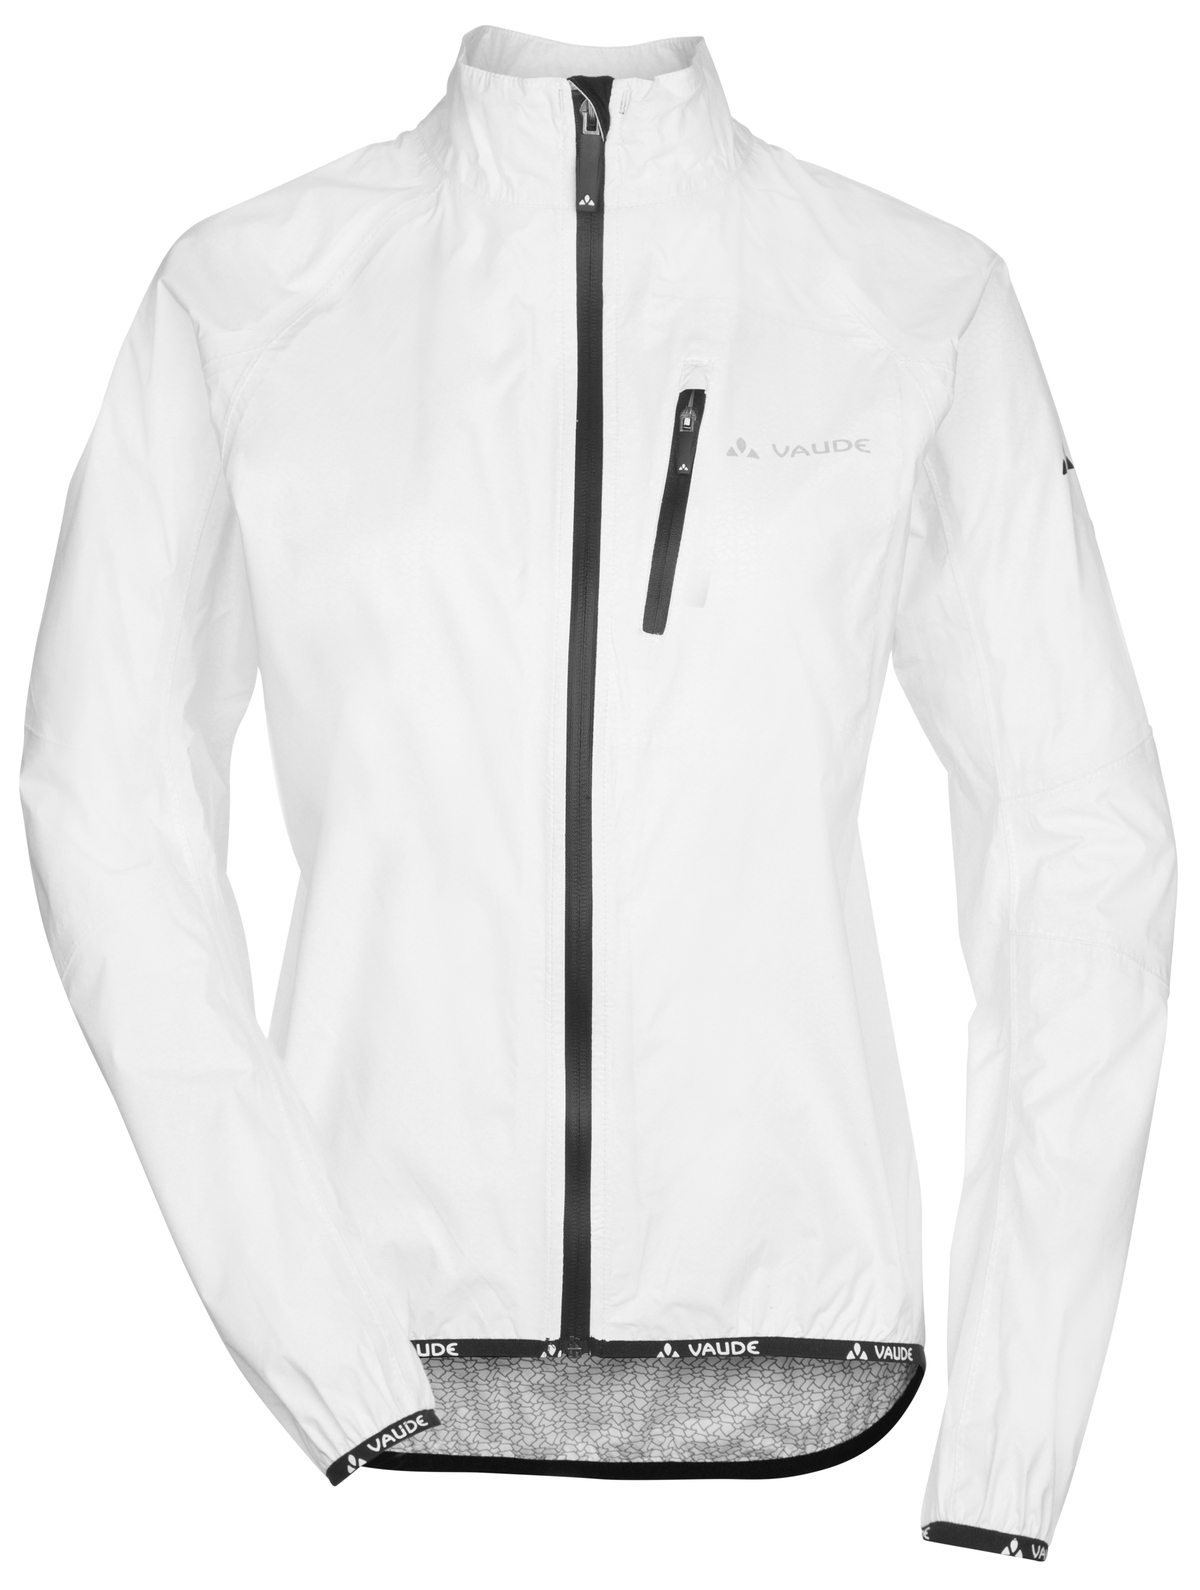 VAUDE Women´s Drop Jacket III white Größe 34 - schneider-sports